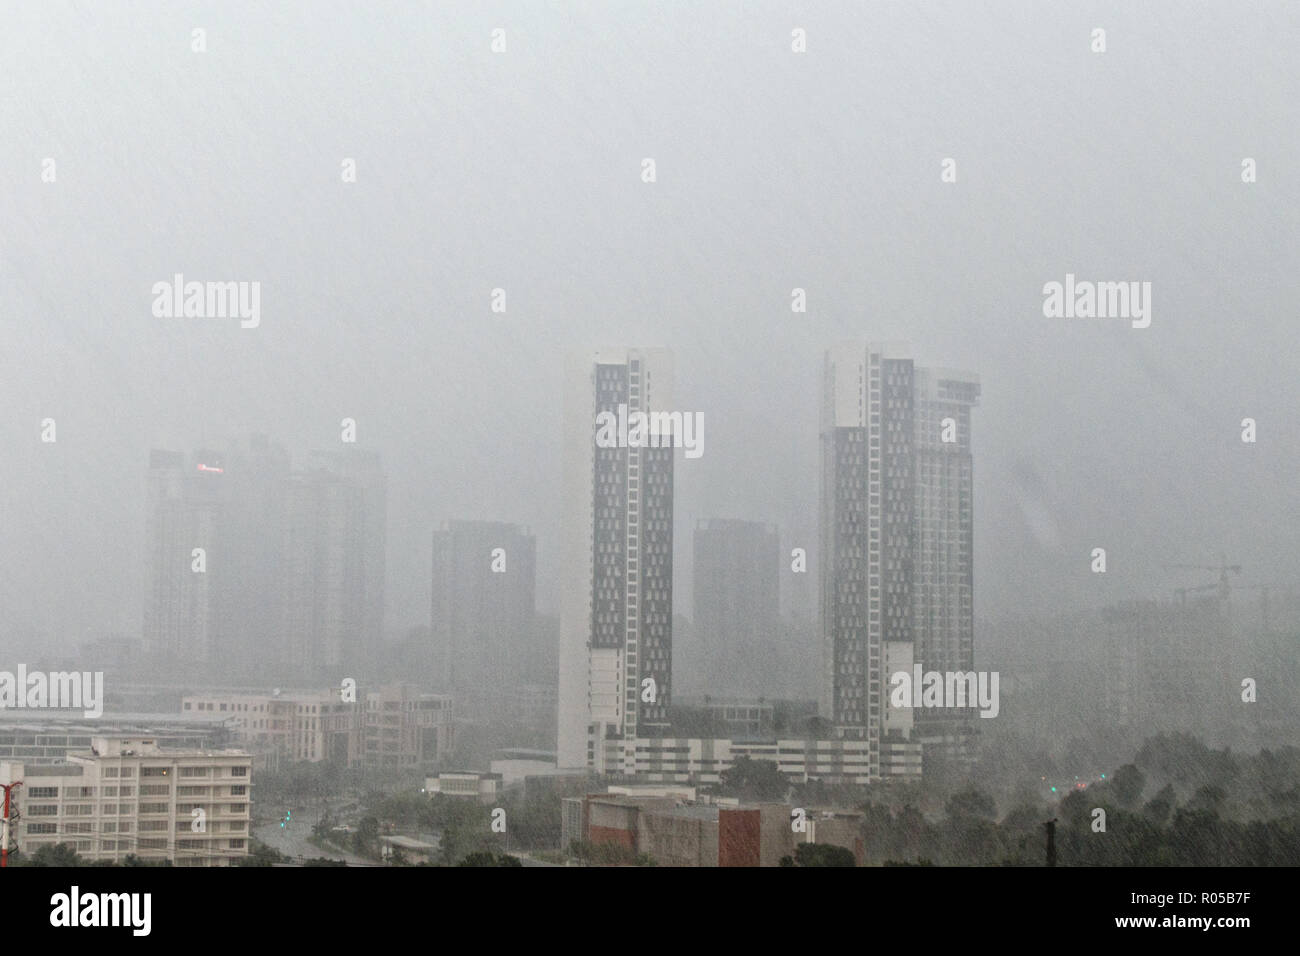 Top view of blurred city during rainy weather, rain stripes on background of skyscrapers, urban view on gray day. - Stock Image